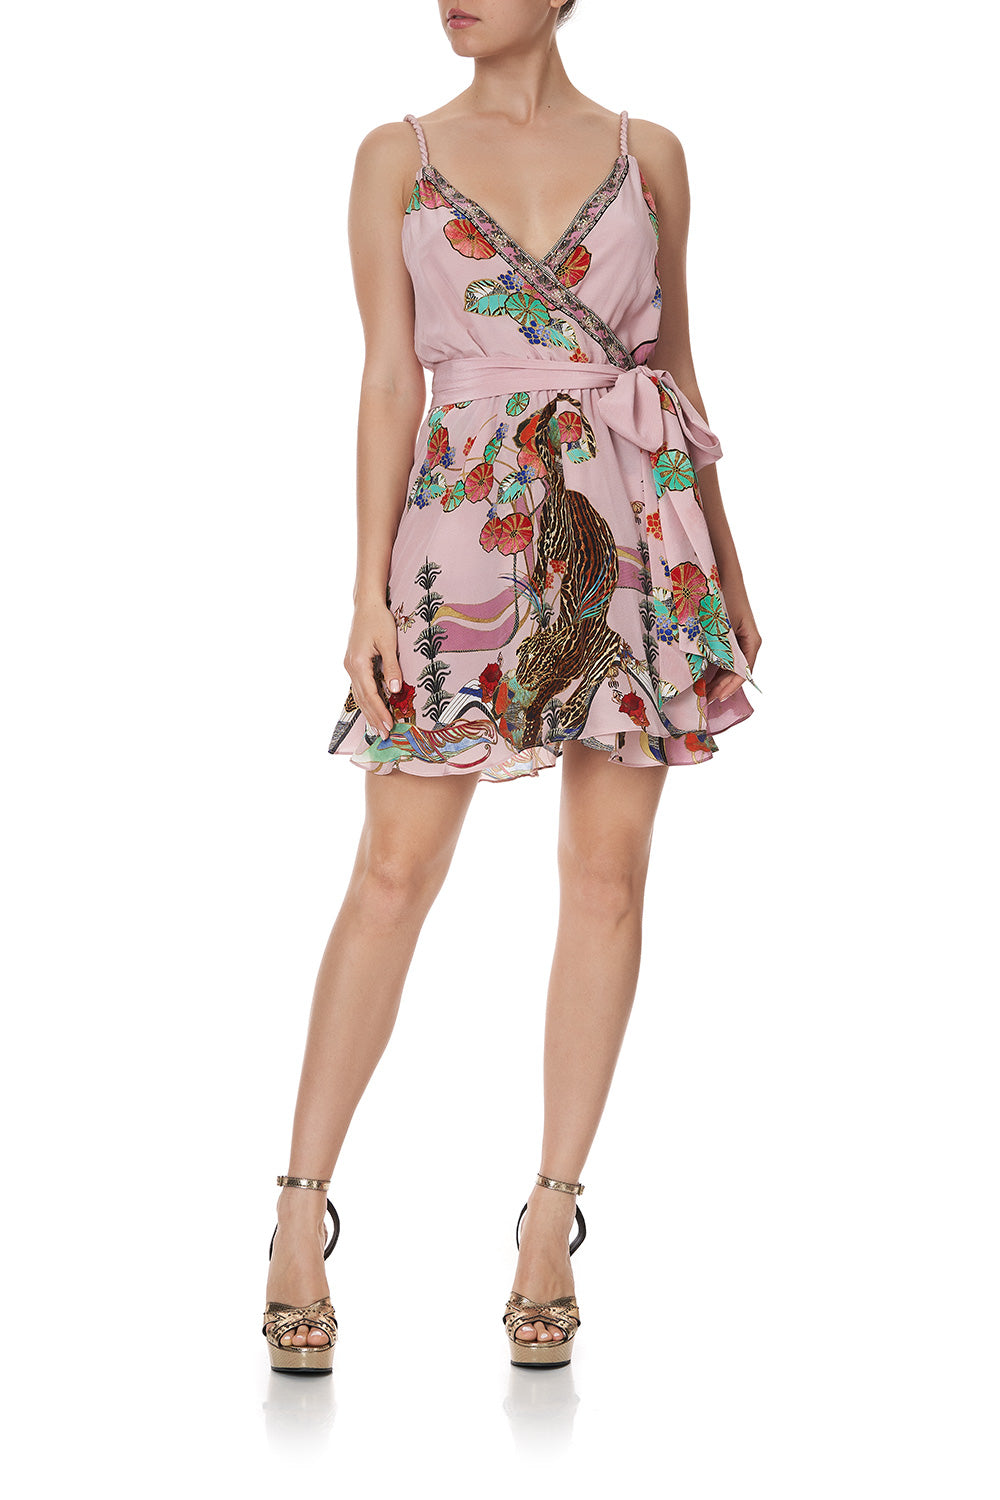 MINI WRAP DRESS WITH TWIST STRAPS ZIBA ZIBA